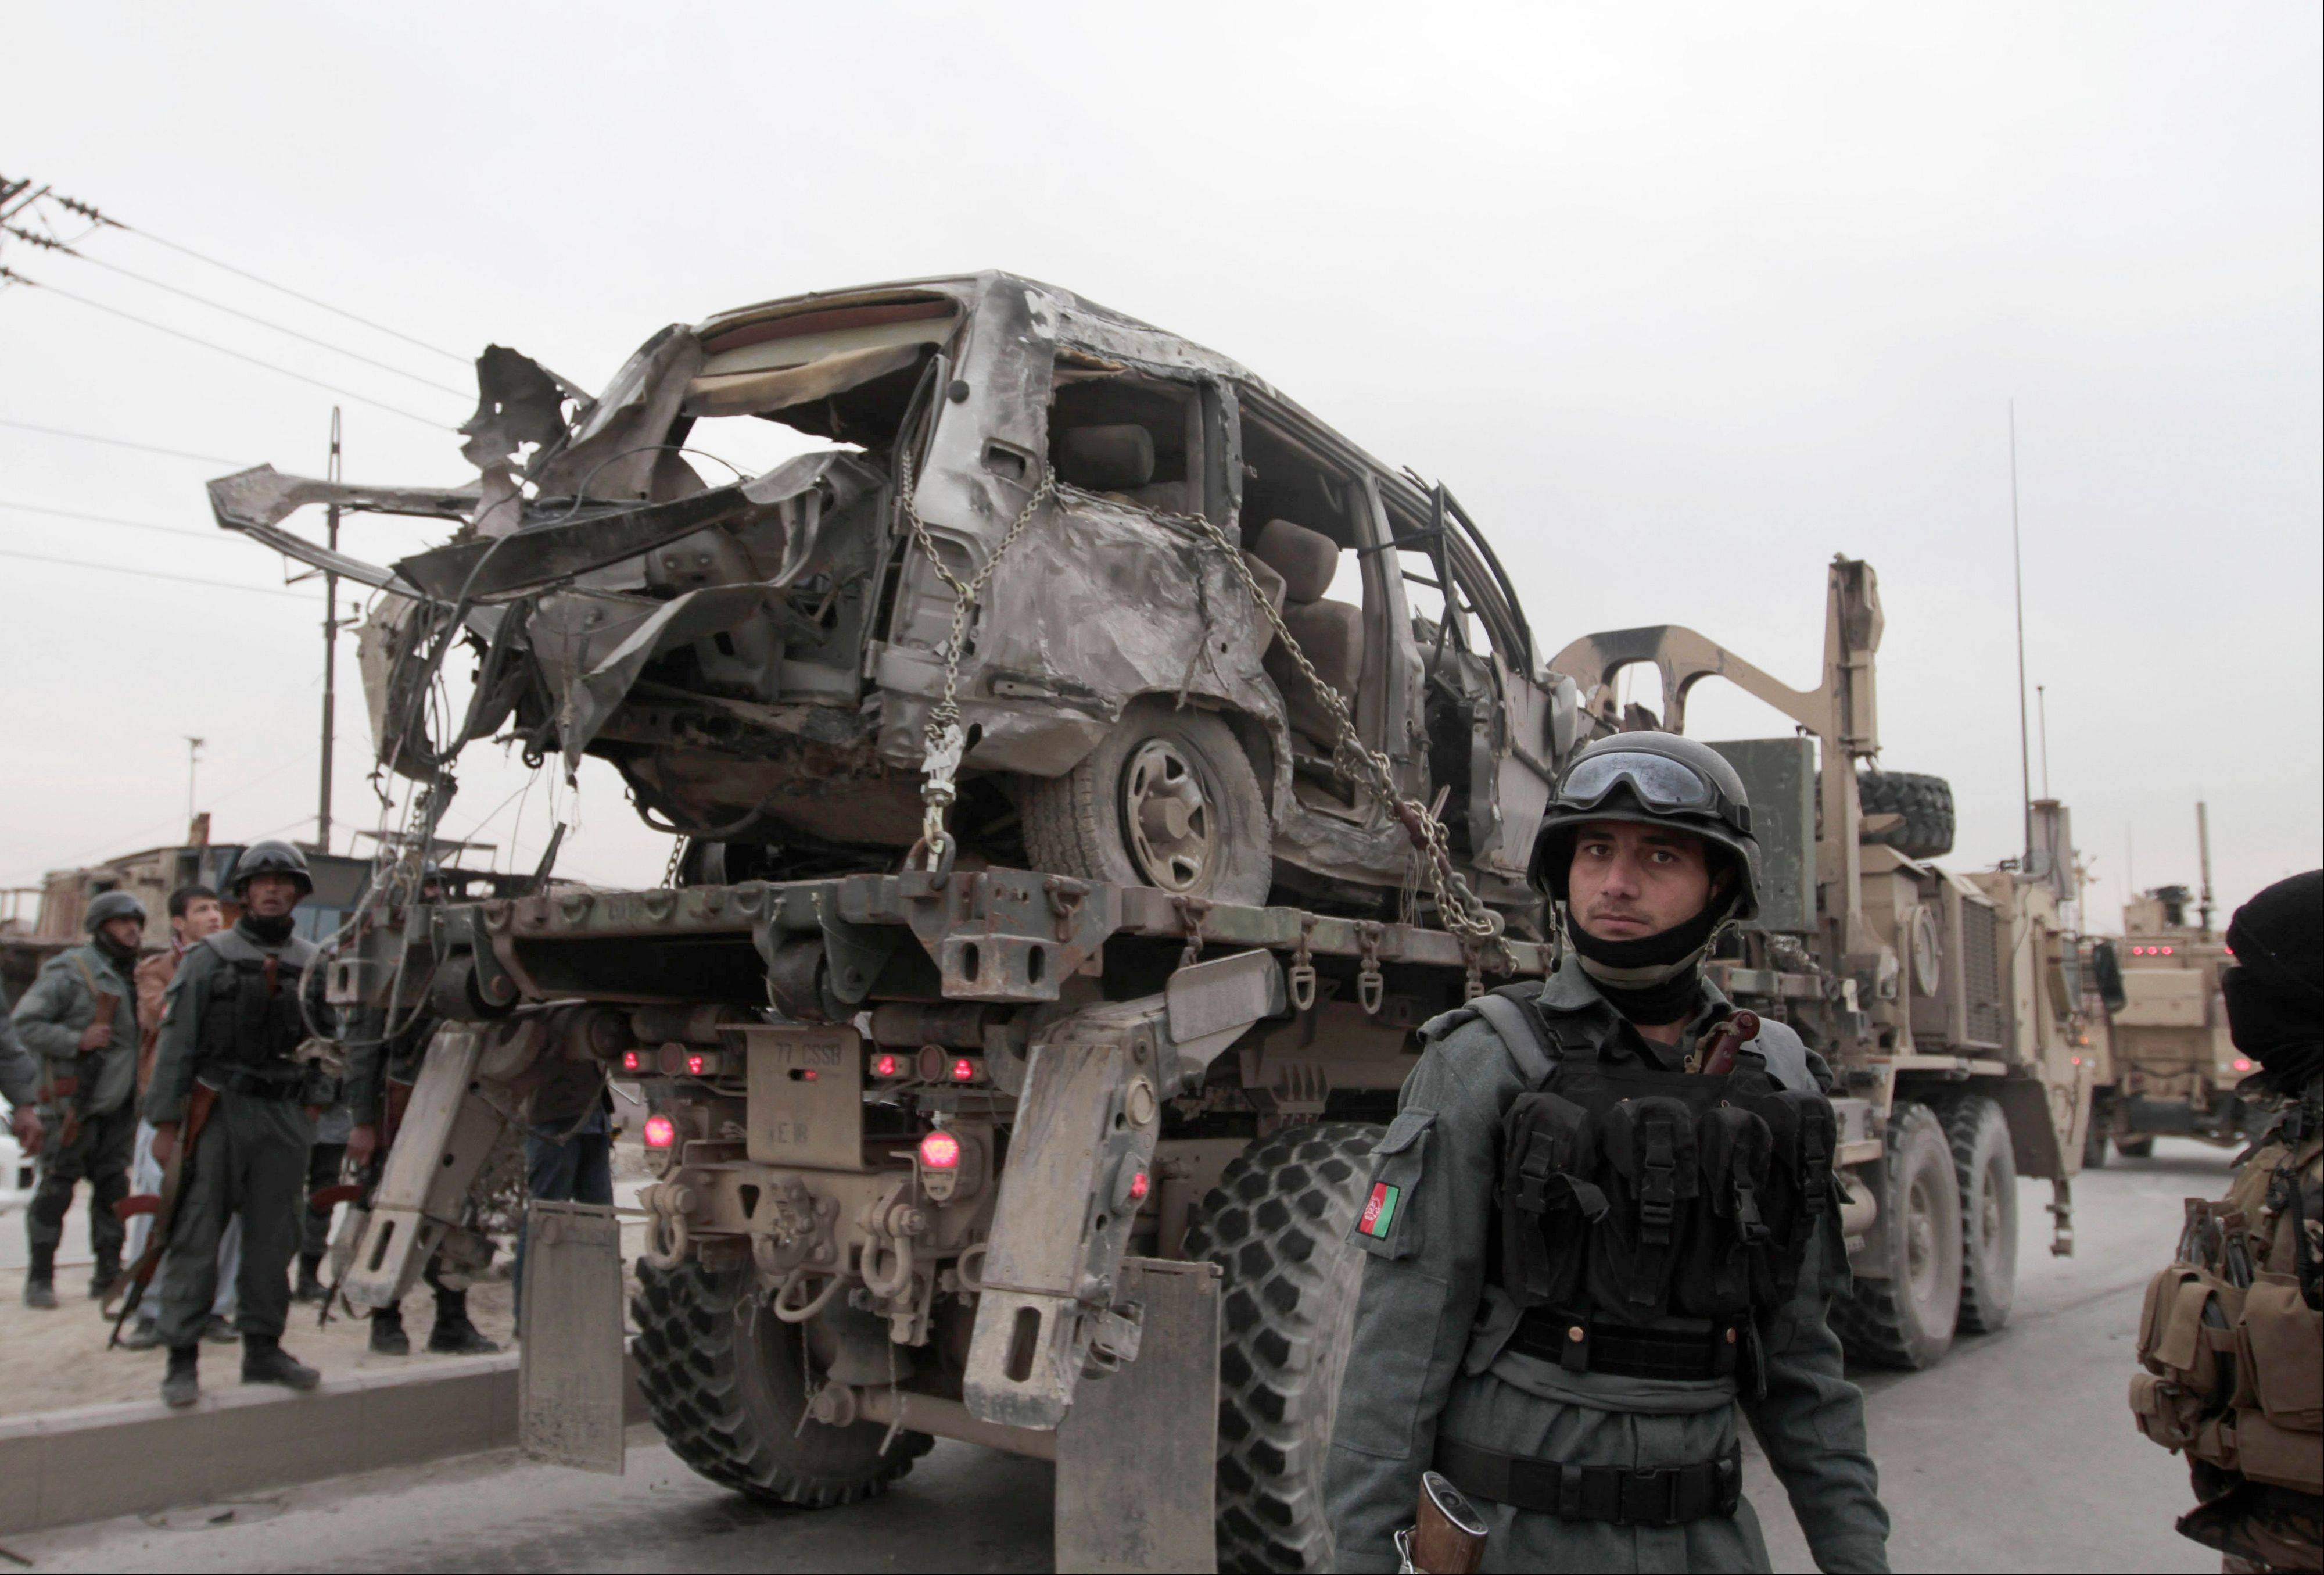 A U.S. military wrecker carries away a vehicle that was destroyed in a suicide car bomb attack on the Jalalabad-Kabul road in Kabul, Afghanistan, Friday. The U.S.-led coalition in Afghanistan says several service members were killed Friday when a suicide car bomber attacked their convoy in an eastern district of the capital, Kabul.